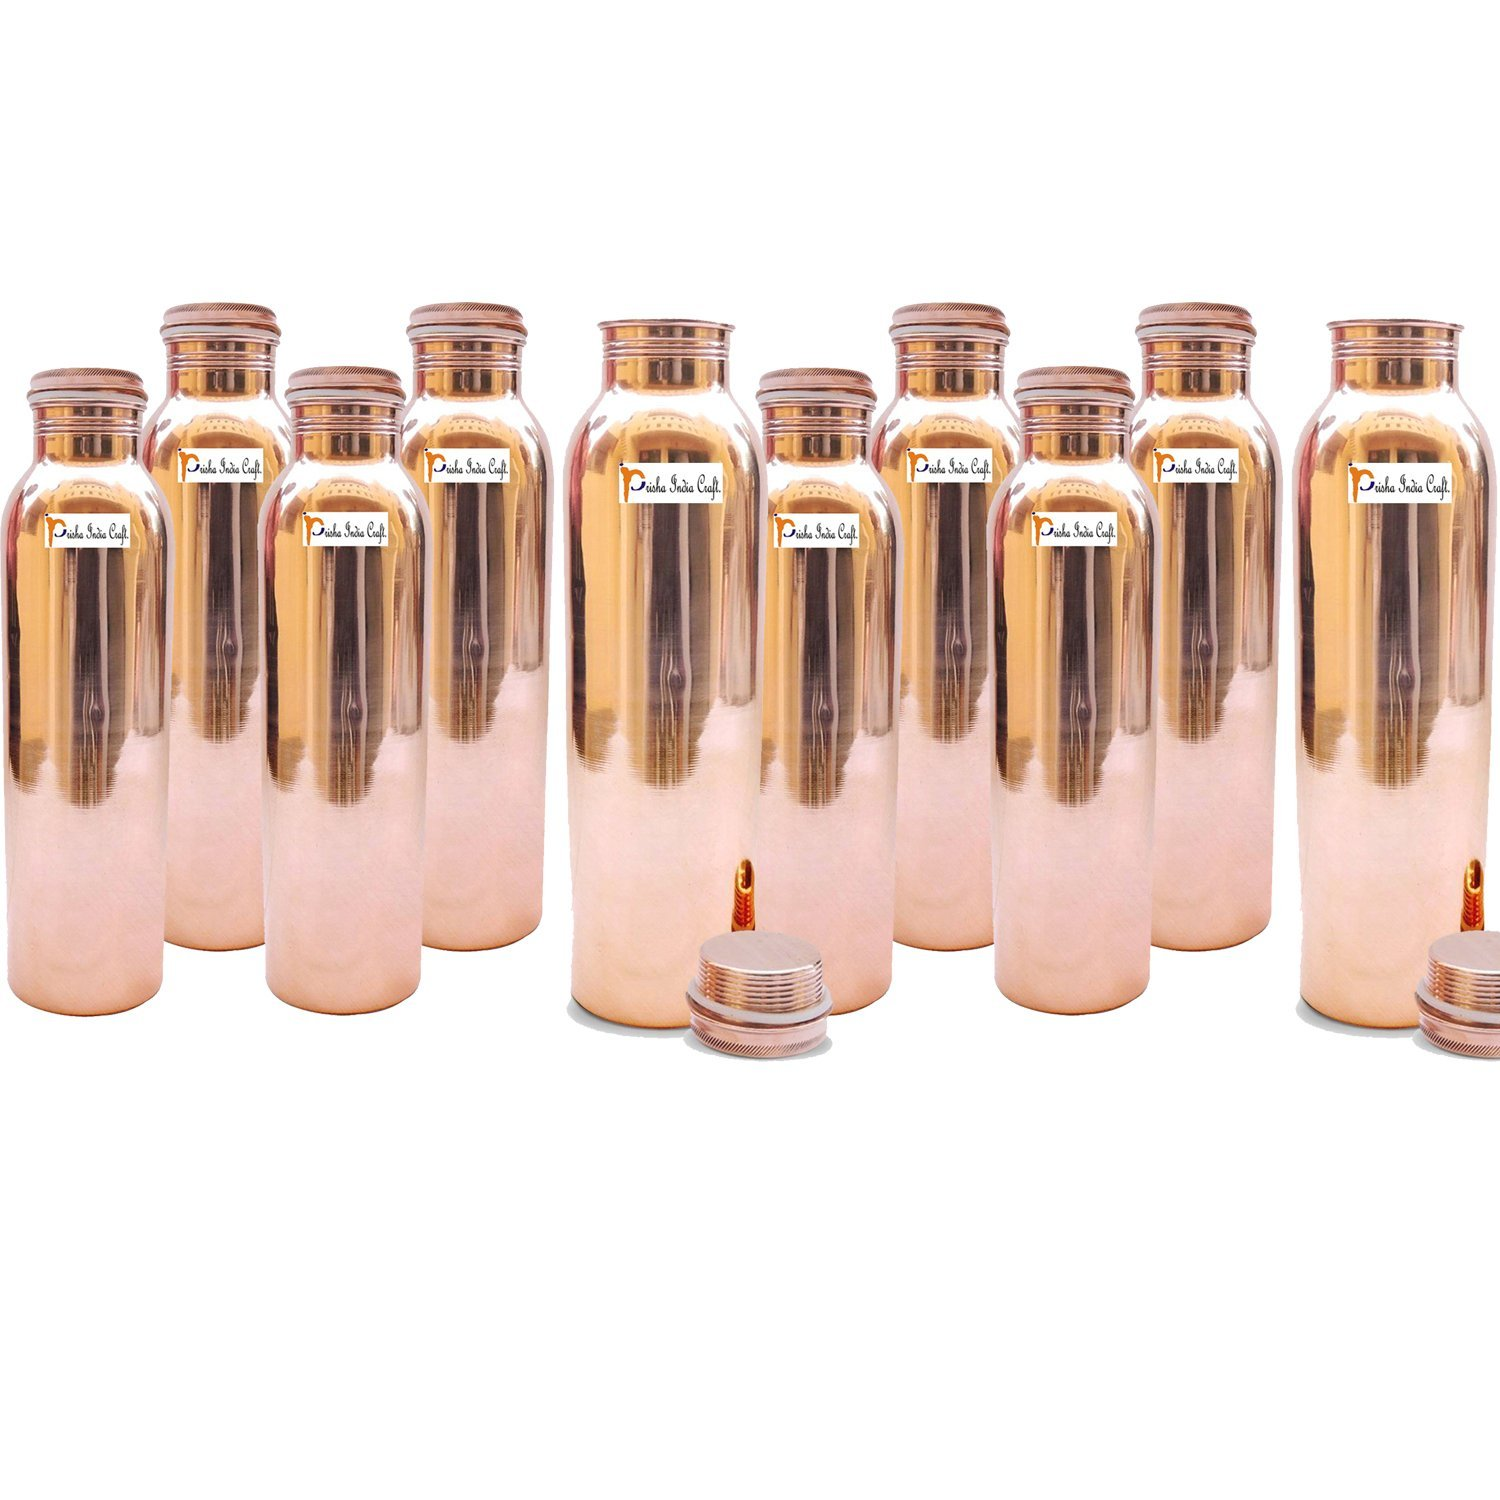 1150ml / 38.89oz - Set of 10 - Prisha India Craft ® Pure Copper Water Bottle for Health Benefits - Water Bottles Joint Free, Handmade - Christmas Gift